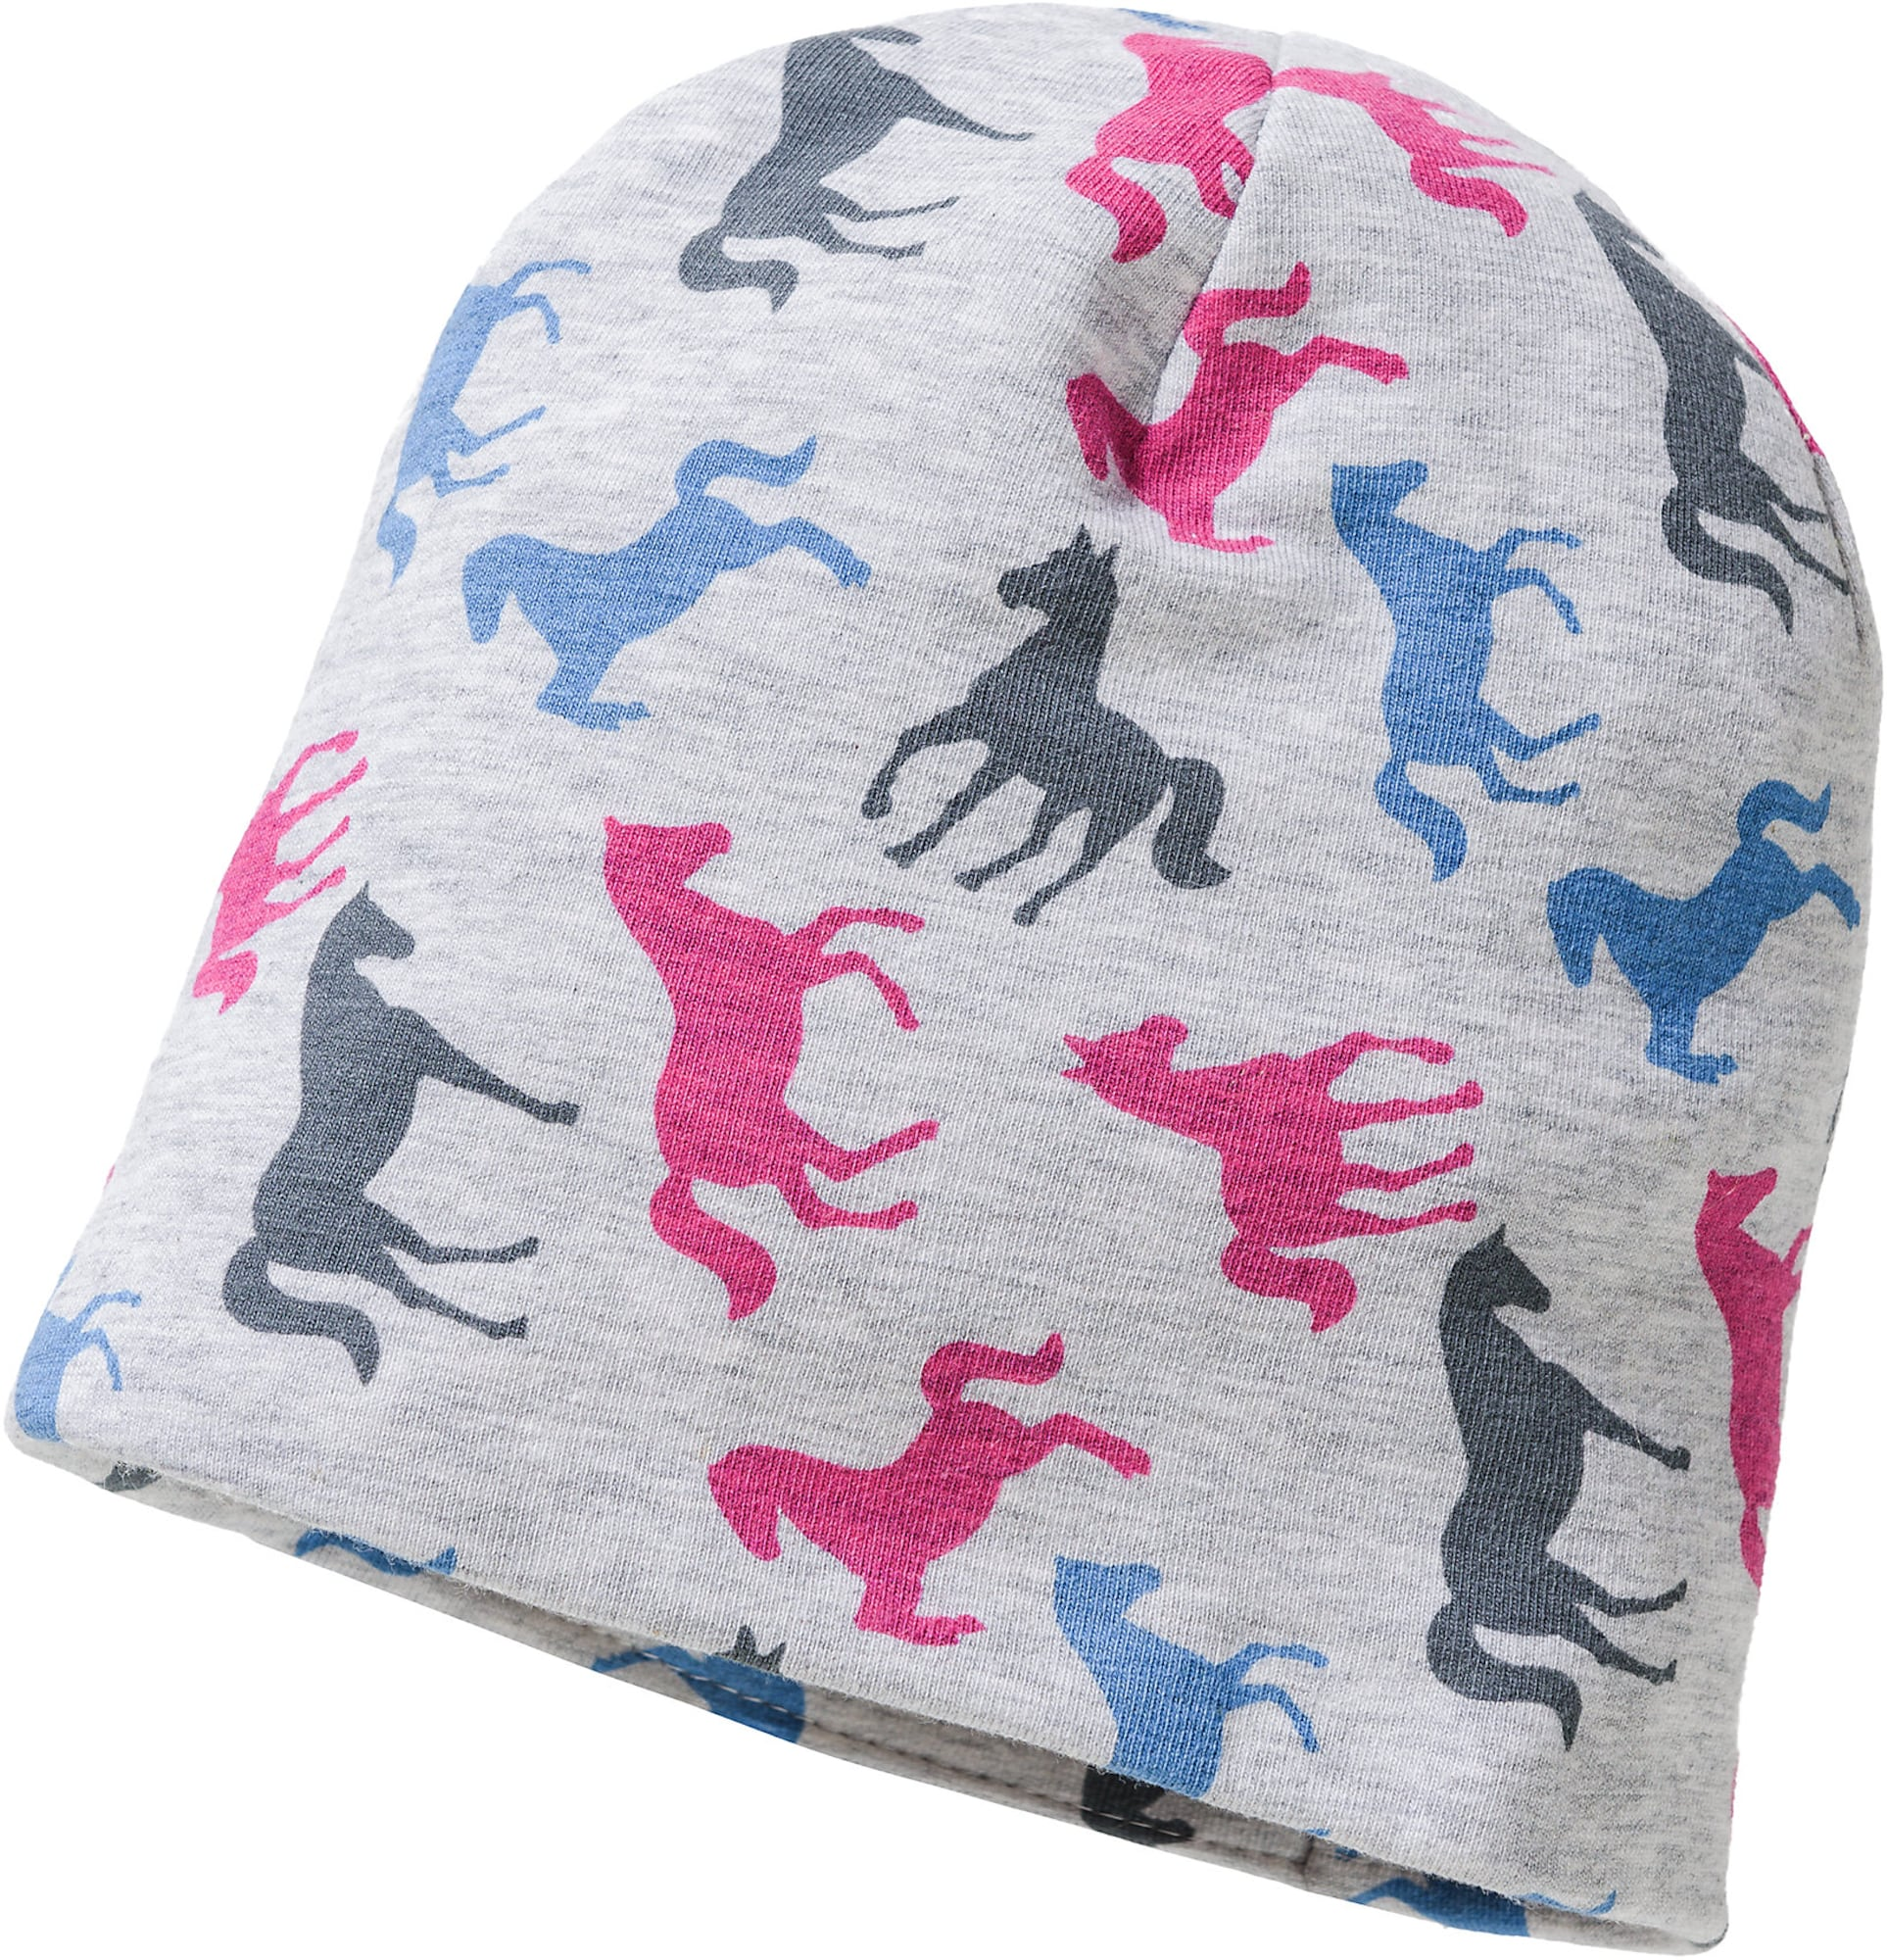 Babyaccessoires - Beanie 'Slouch' - Onlineshop ABOUT YOU